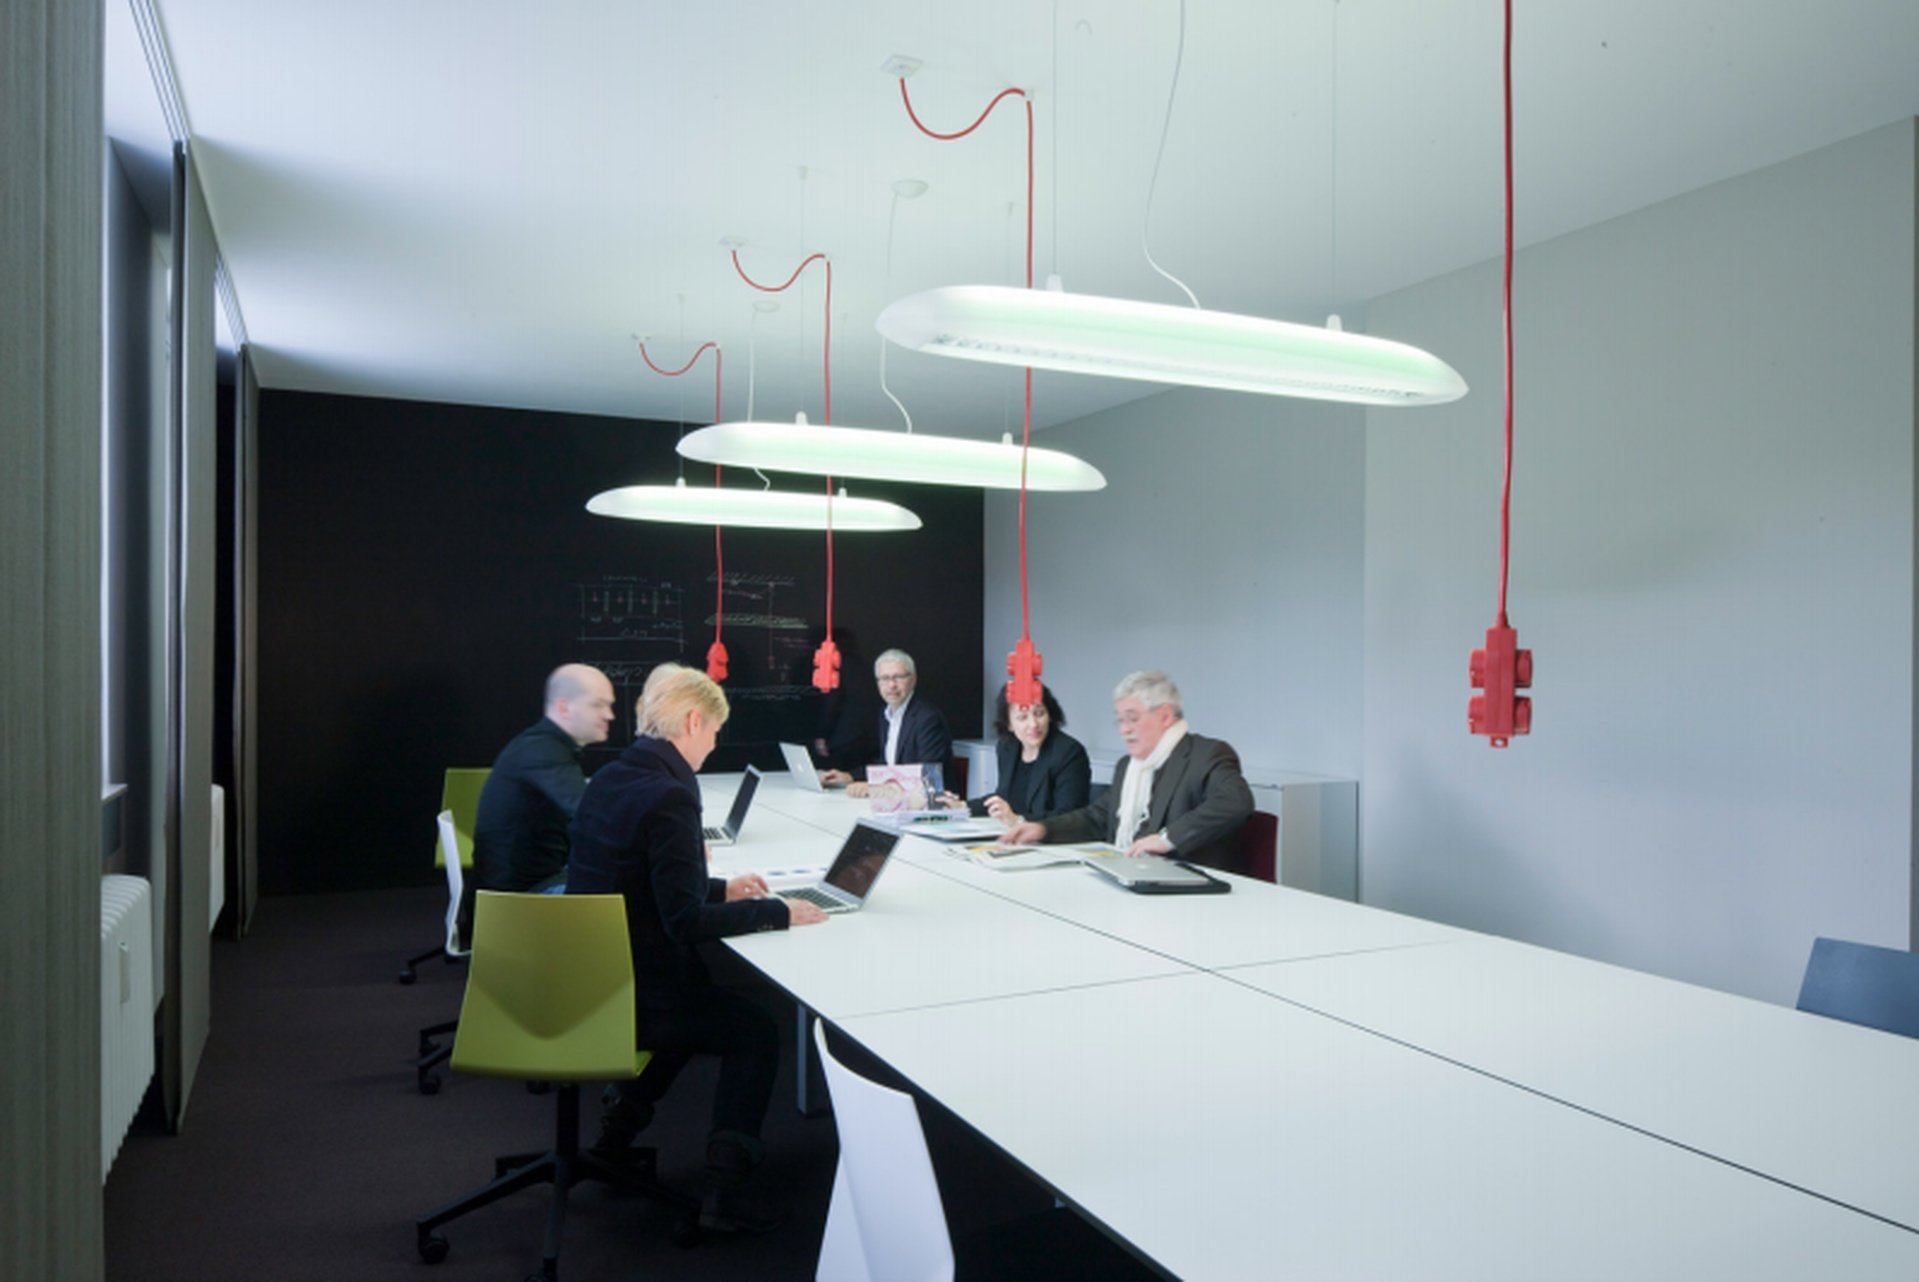 Frankfurt Train station meeting rooms Meeting room MEET/N/WORK - Training Space image 10